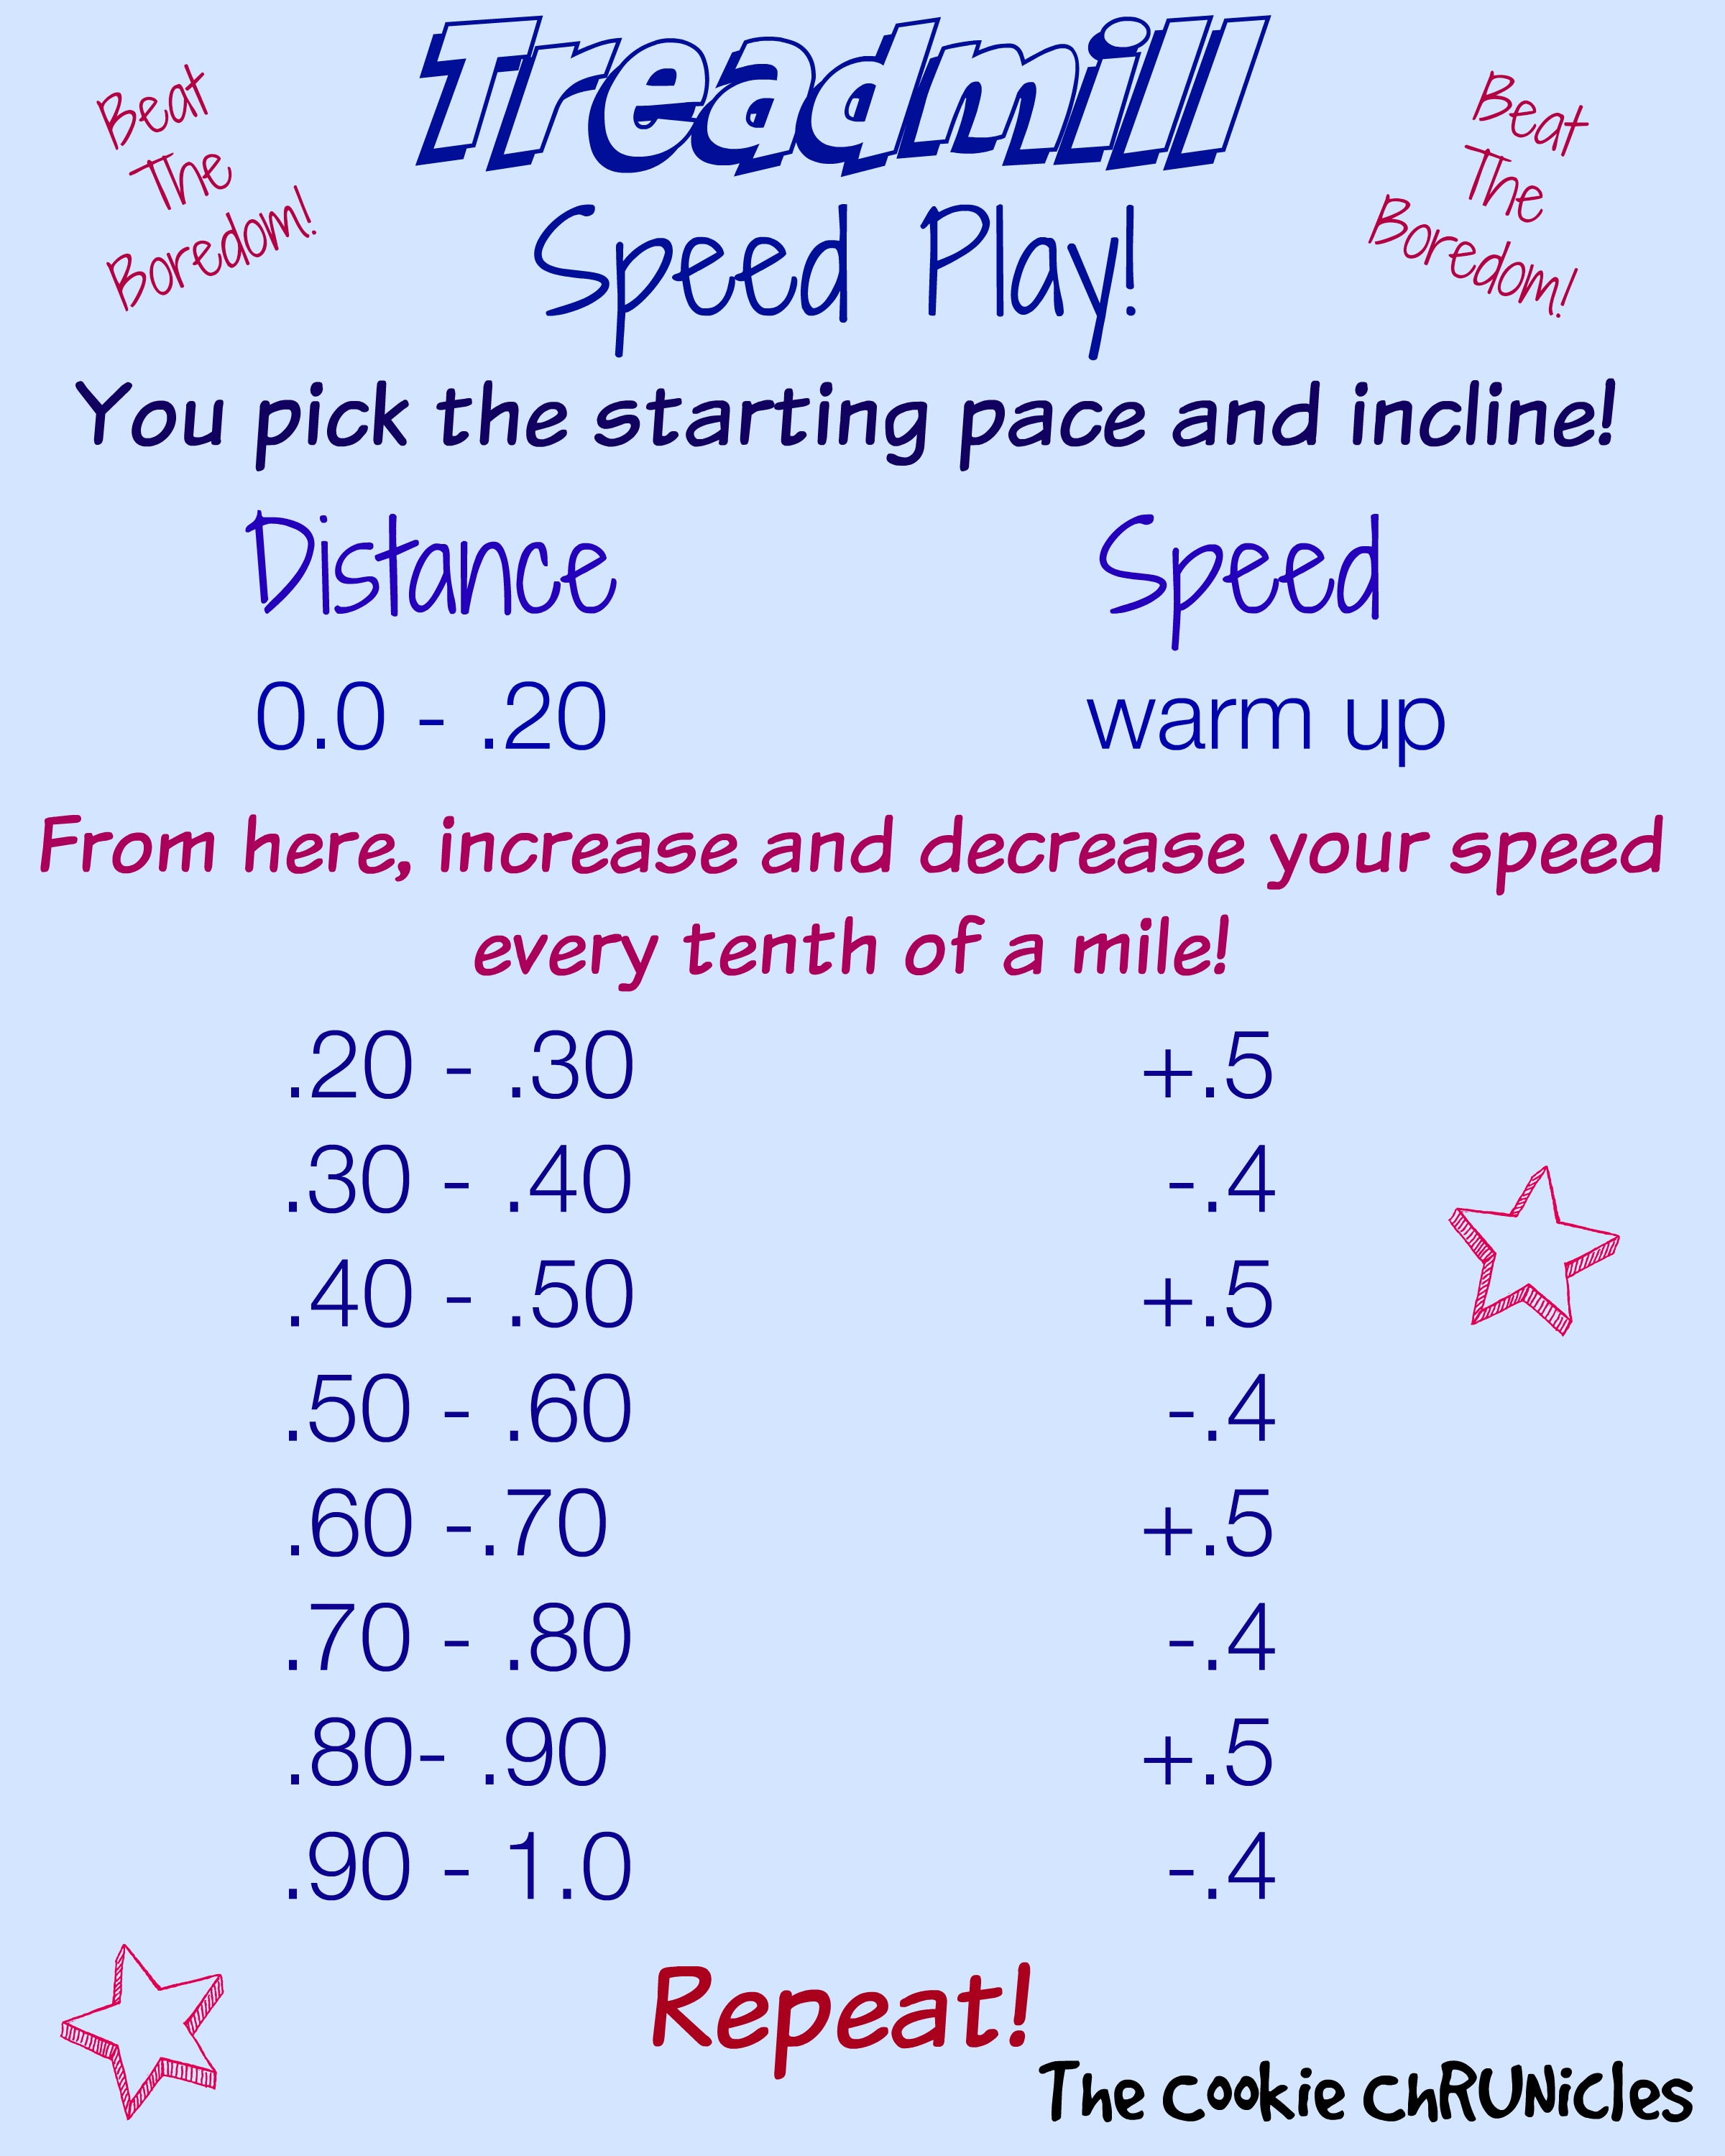 treadmill speed play workout